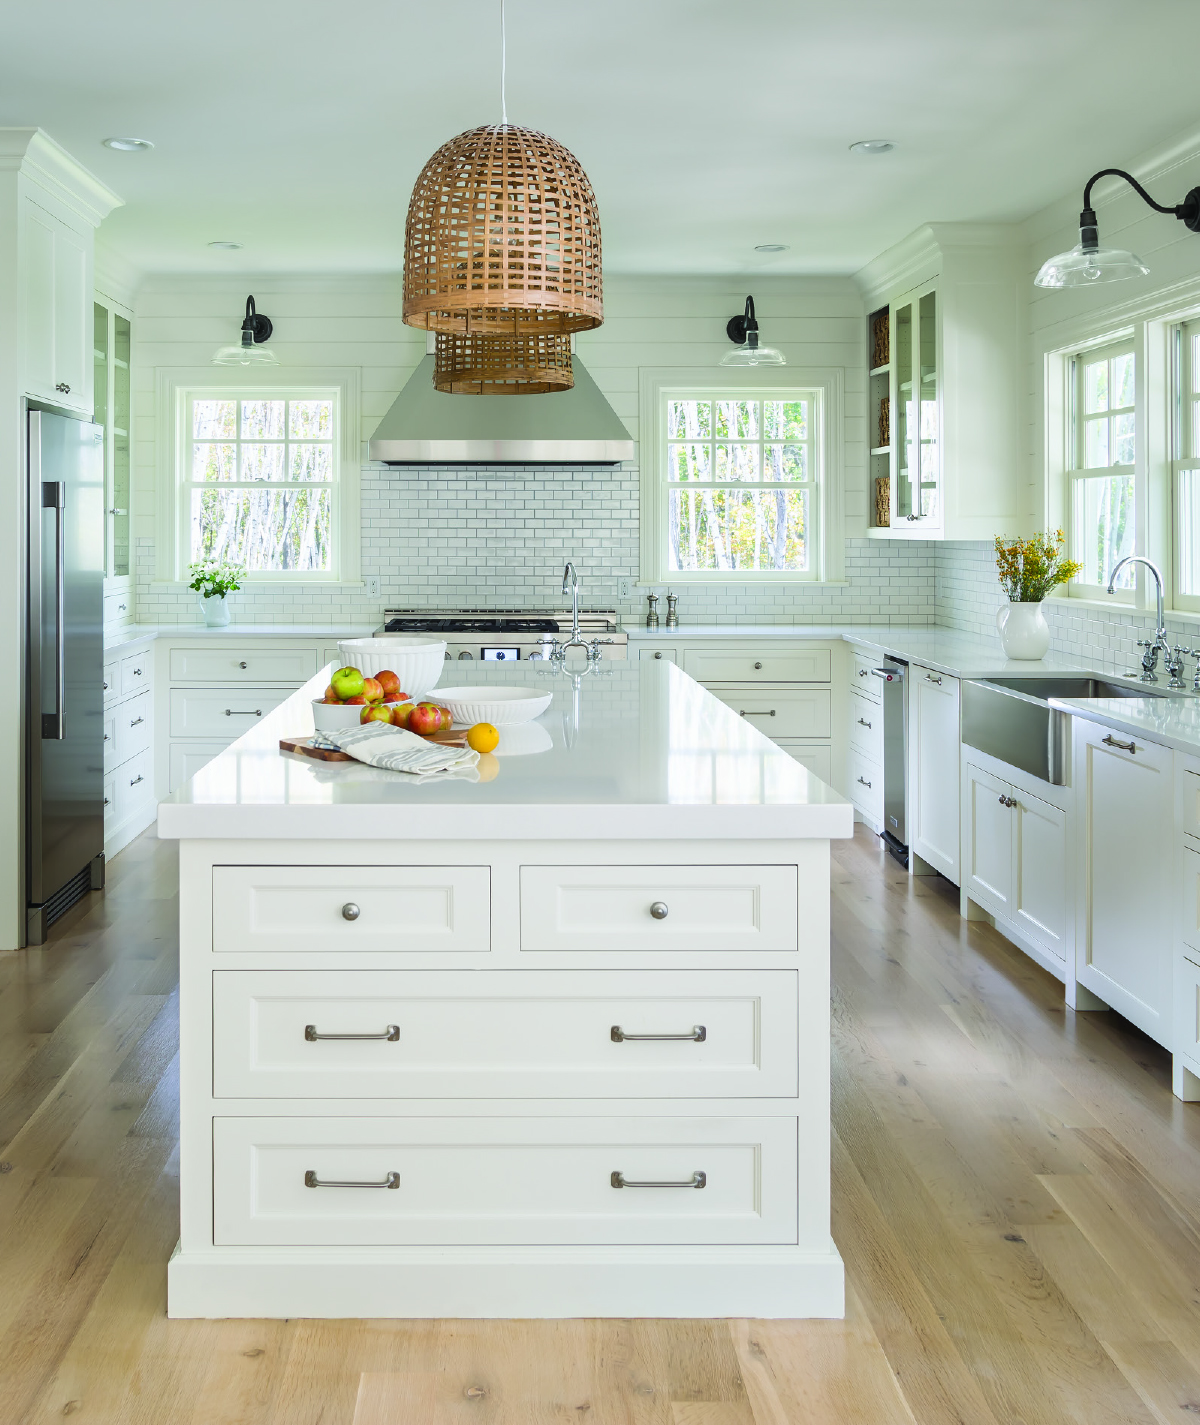 An all-white kitchen with stainless steel appliances, subway tile backsplash, and center island, a winner of the National Kitchen and Bath Association Minnesota Design Awards.